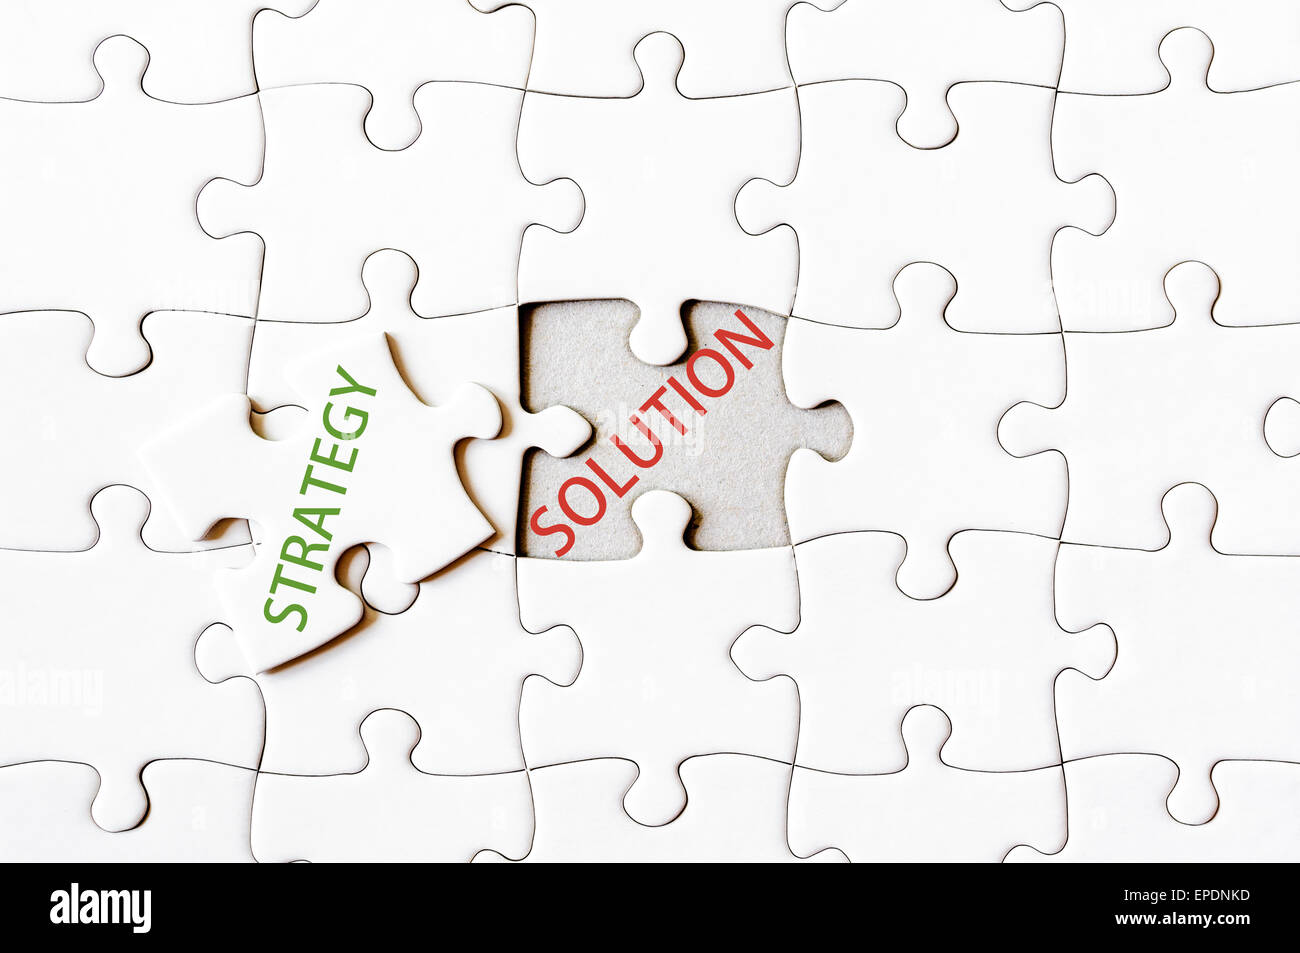 Epd Stock Quote Missing Jigsaw Puzzle Piece With Word Strategy Covering Text